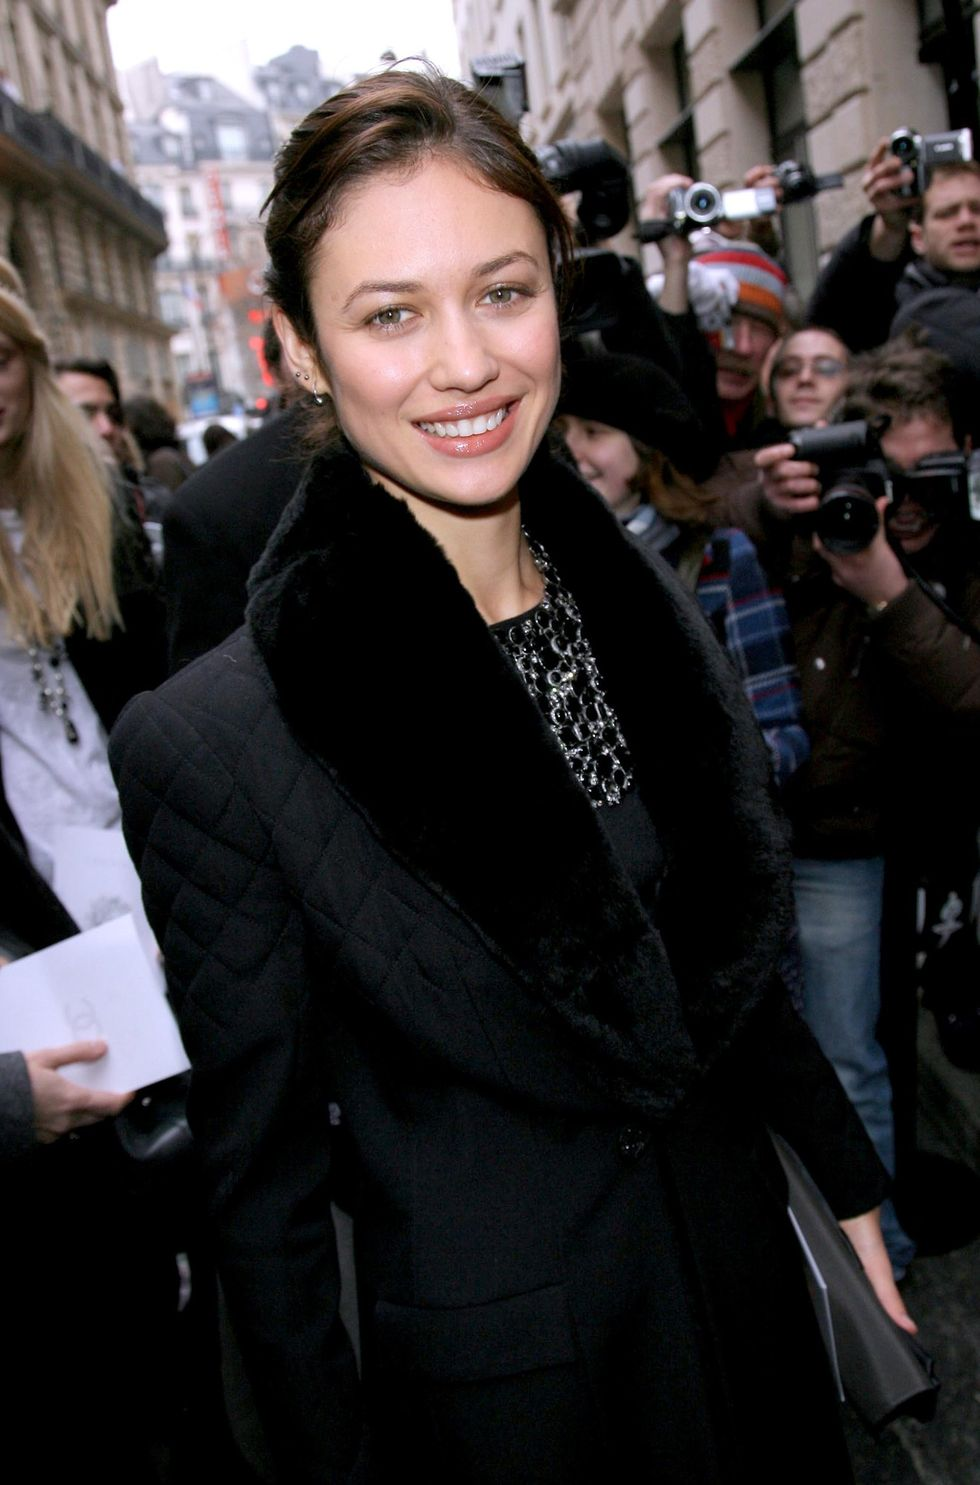 olga-kurylenko-chanel-fashion-show-in-parise-01